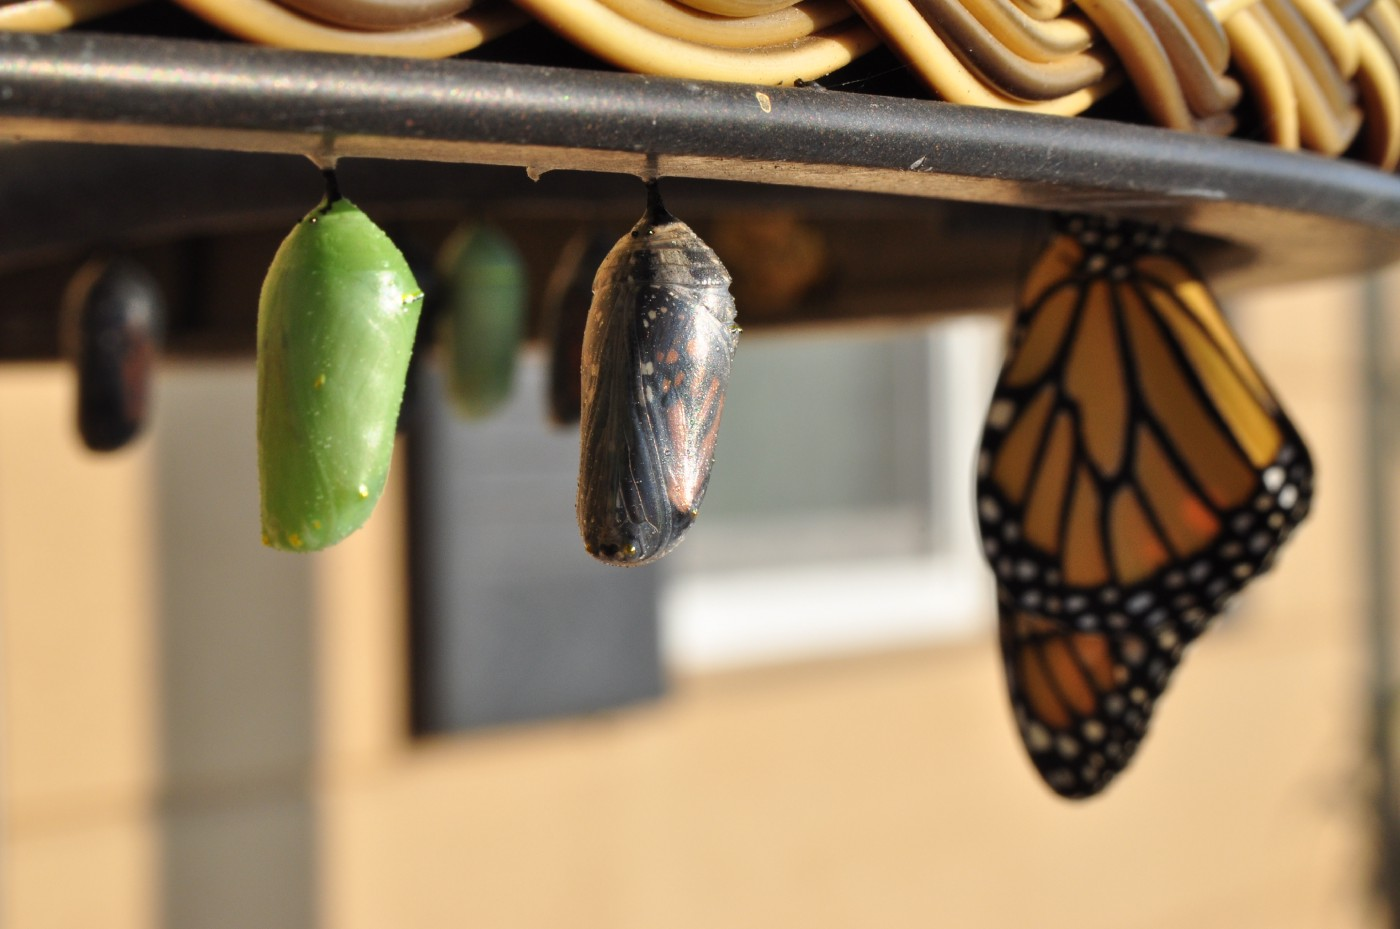 a newly hatched Monarch butterfly and two pupae at different stages of maturity